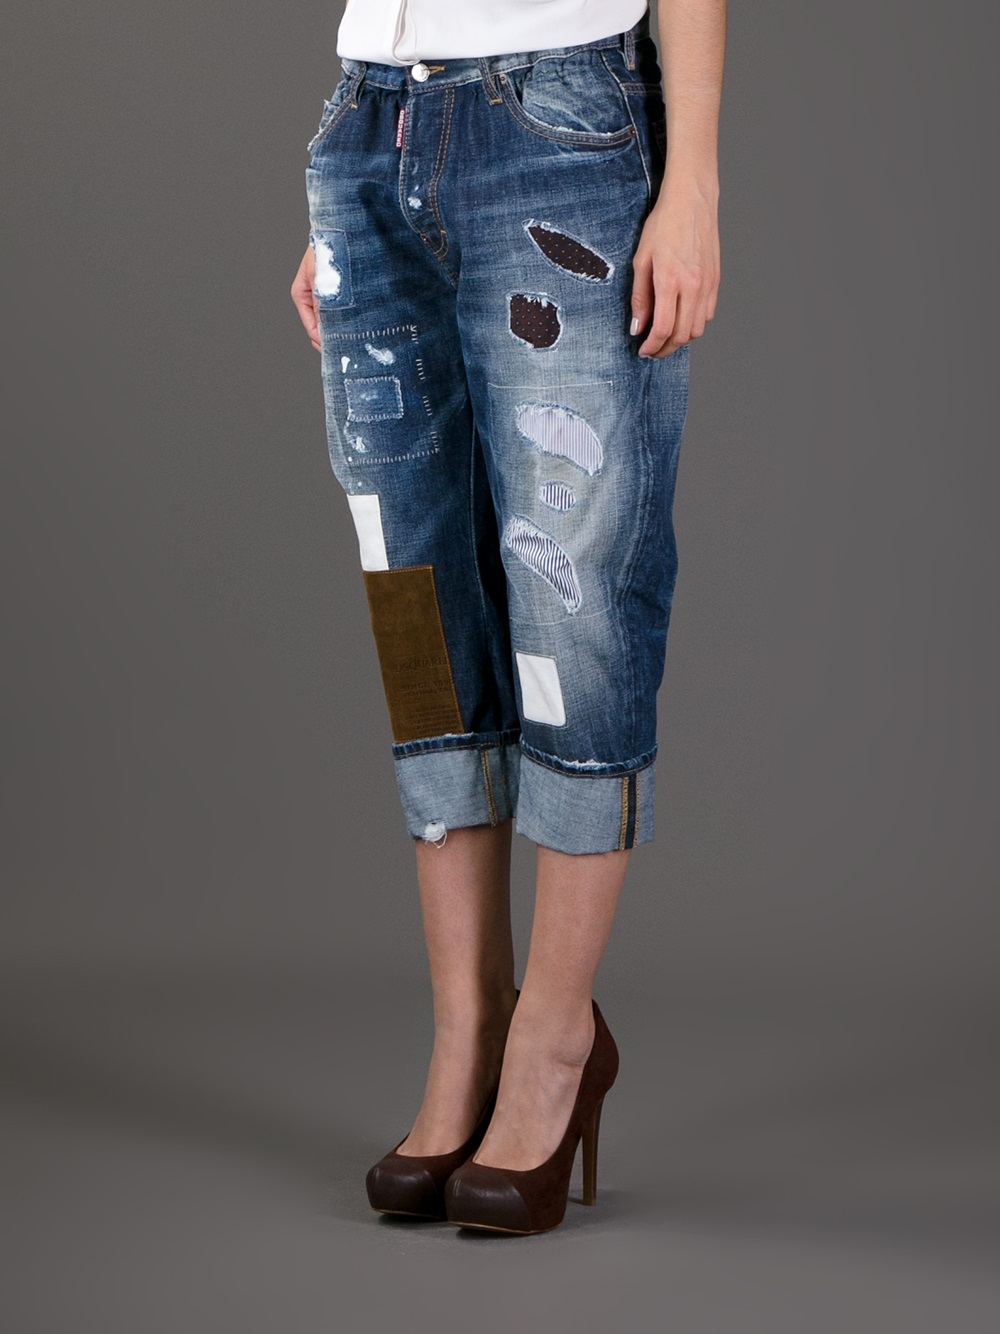 Dsquared2 'big Dean's Brother's' Jean - Cuccuini - Farfetch.com_files.jpg